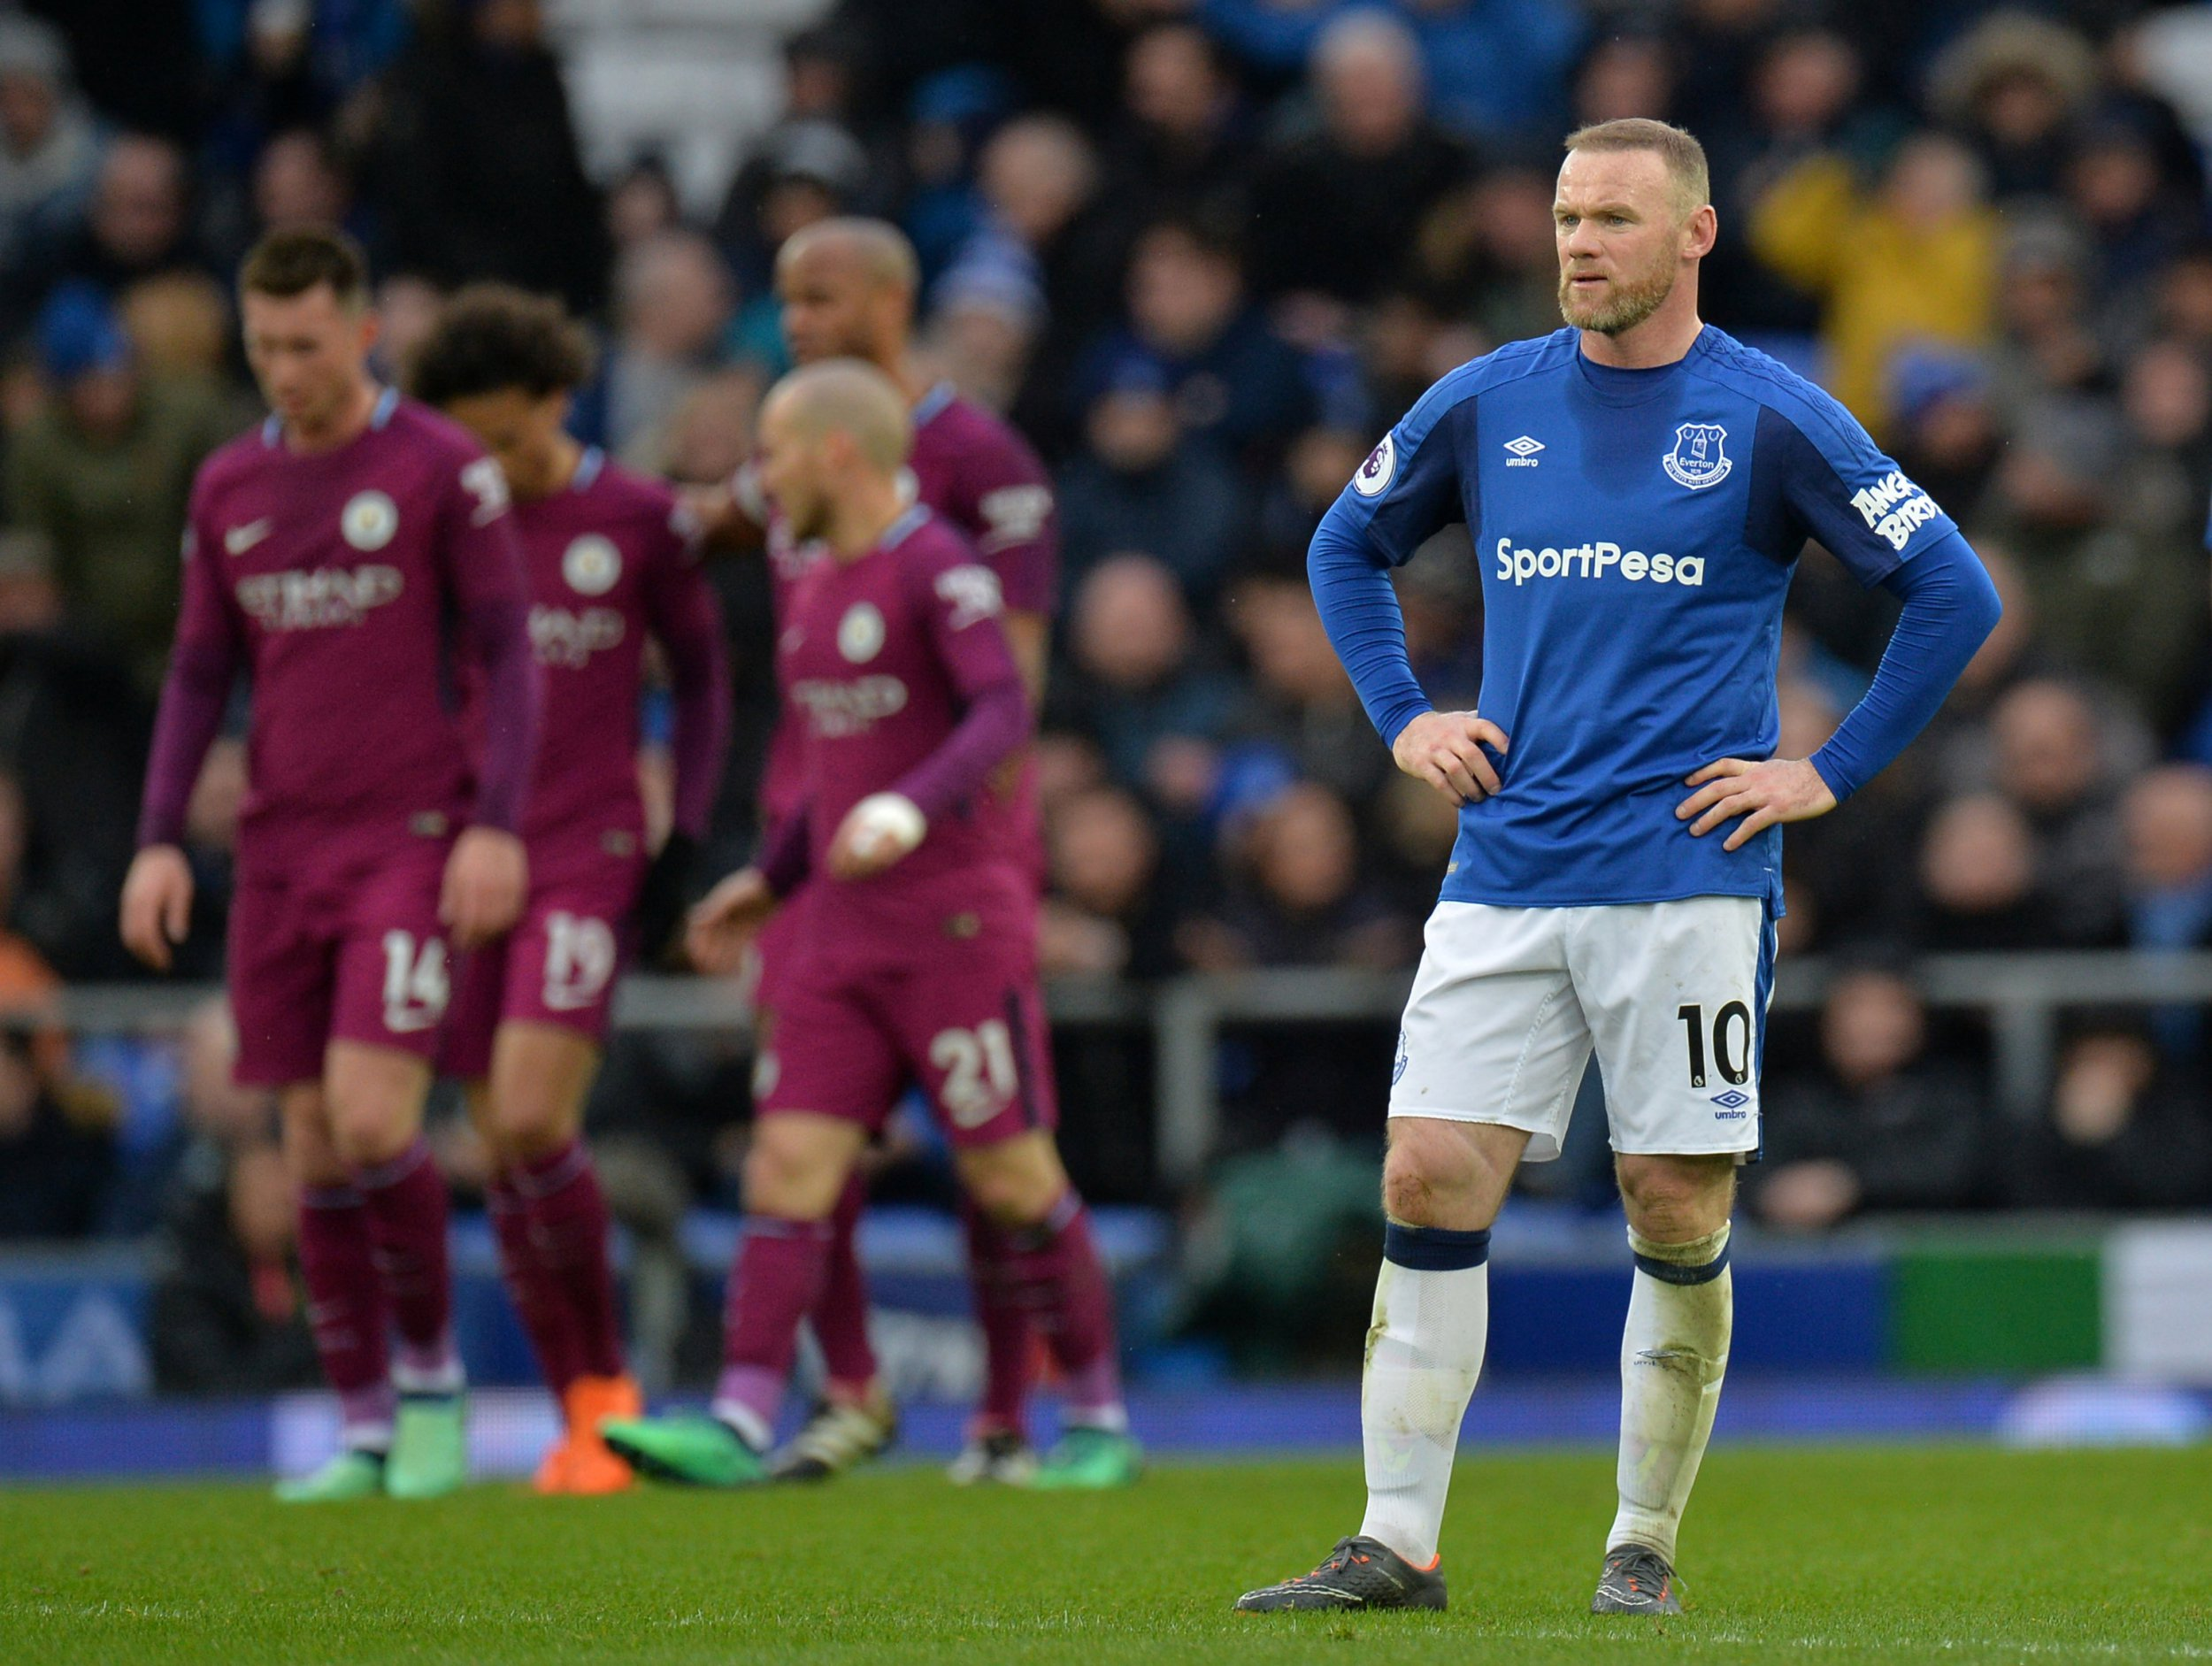 Leroy Sane and Kevin De Bruyne humiliate Wayne Rooney during Manchester City's win over Everton